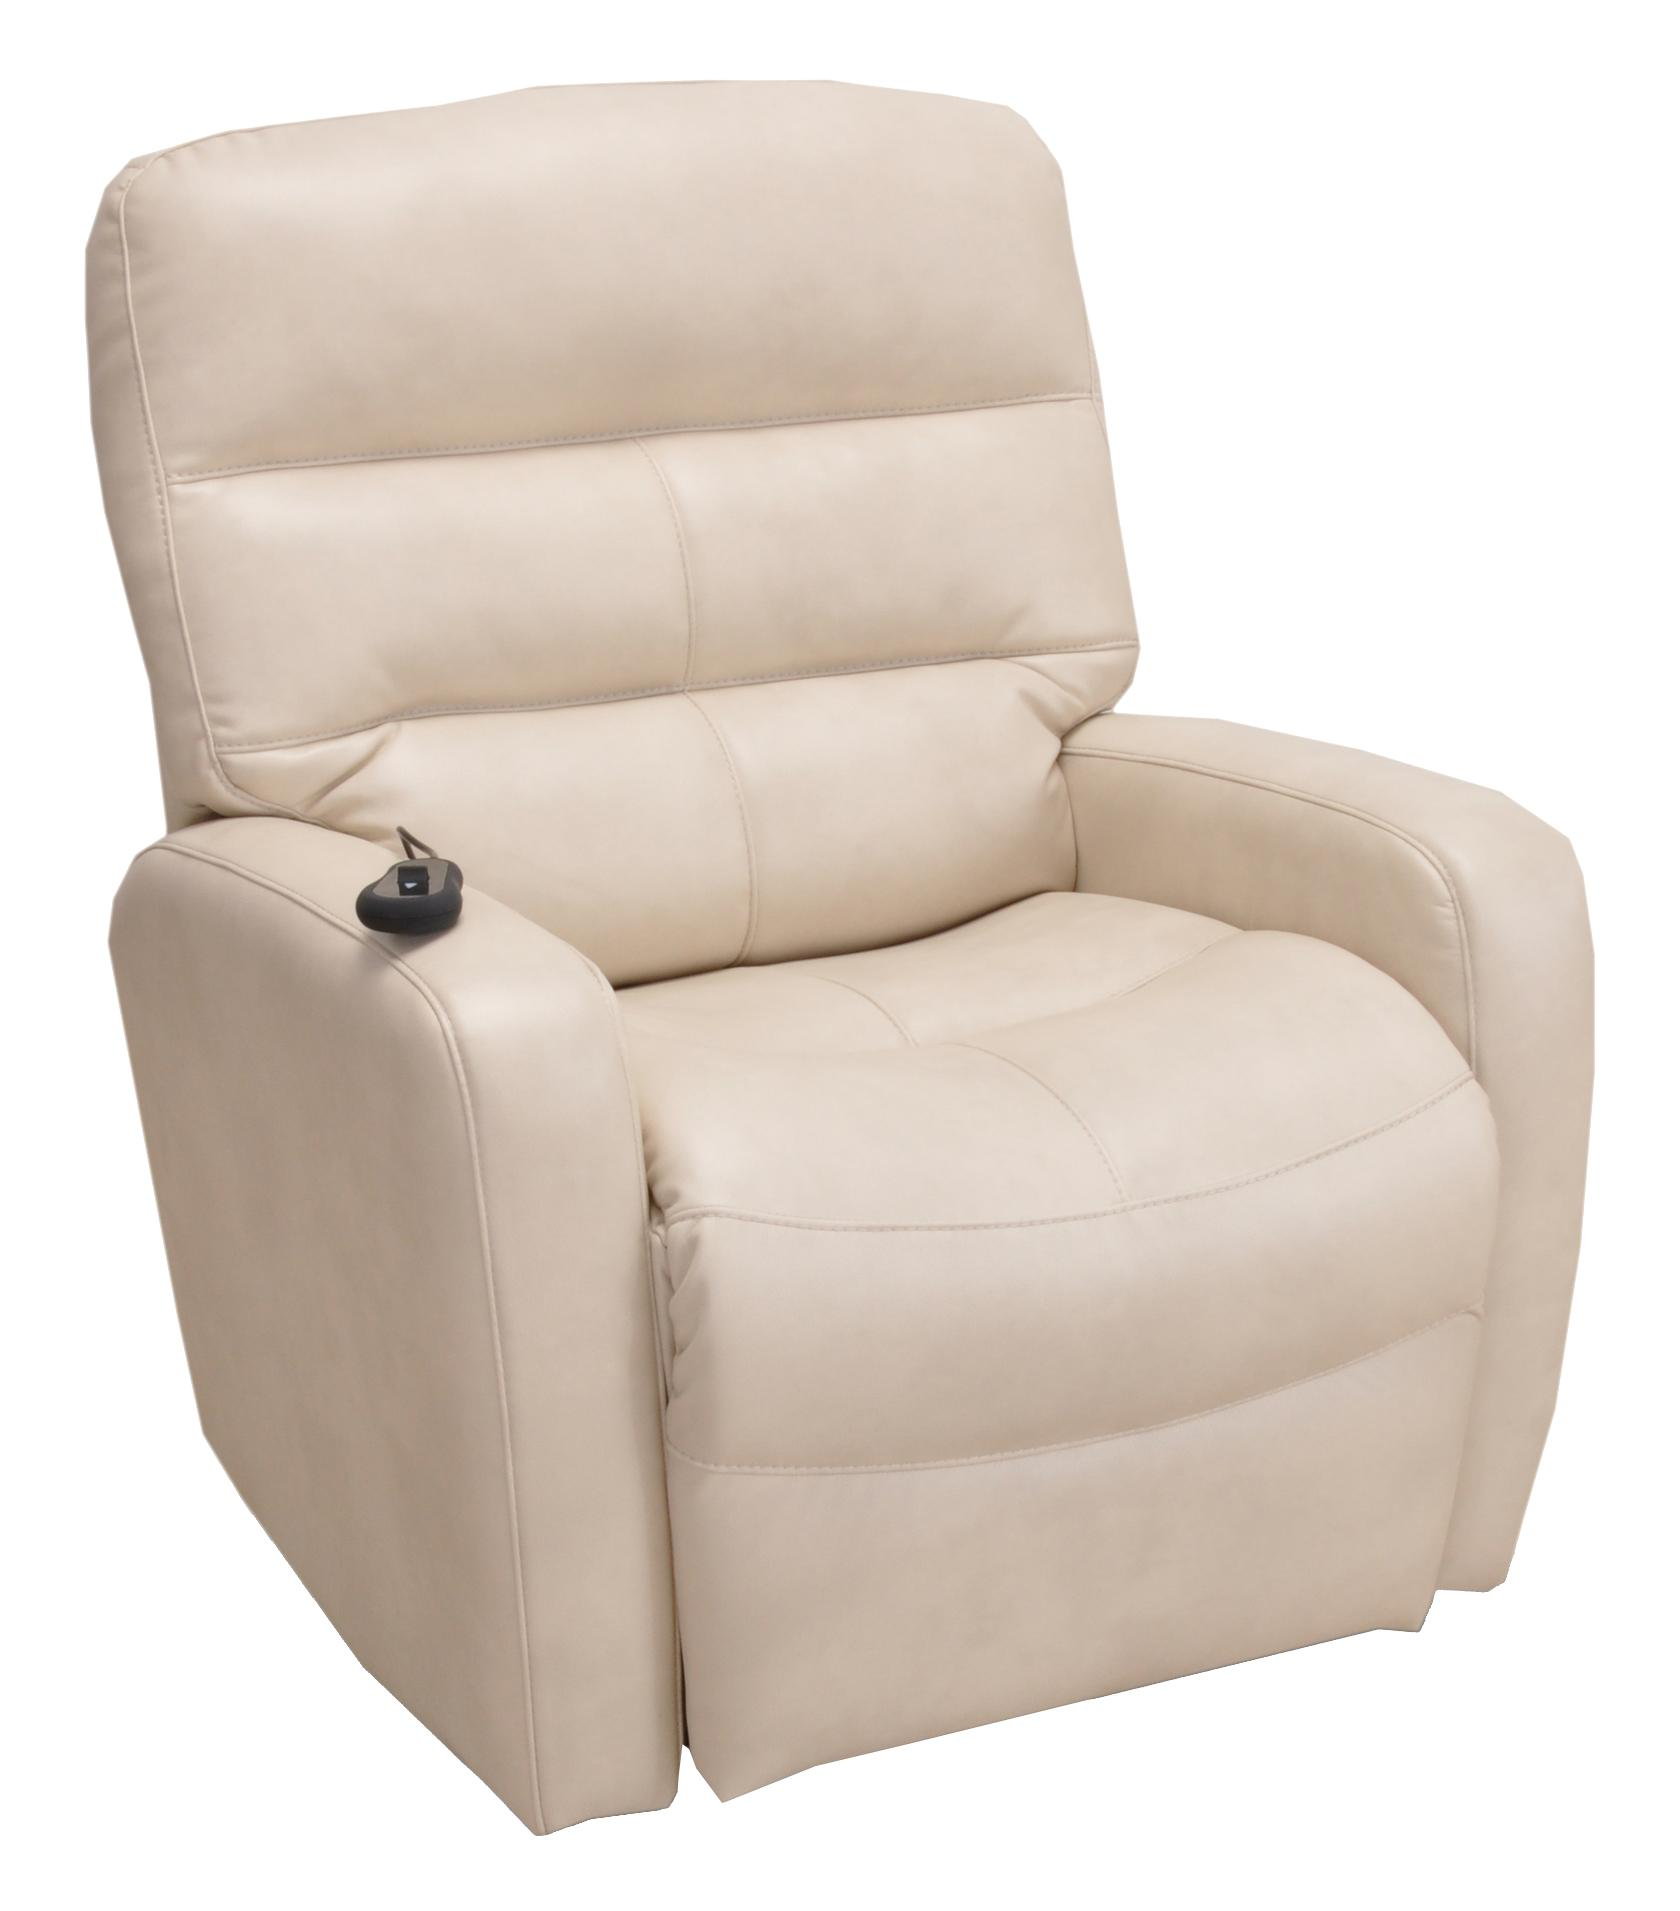 Franklin franklin recliners jetson rocker recliner with casual contemporary style virginia - Stylish rocker recliner ...